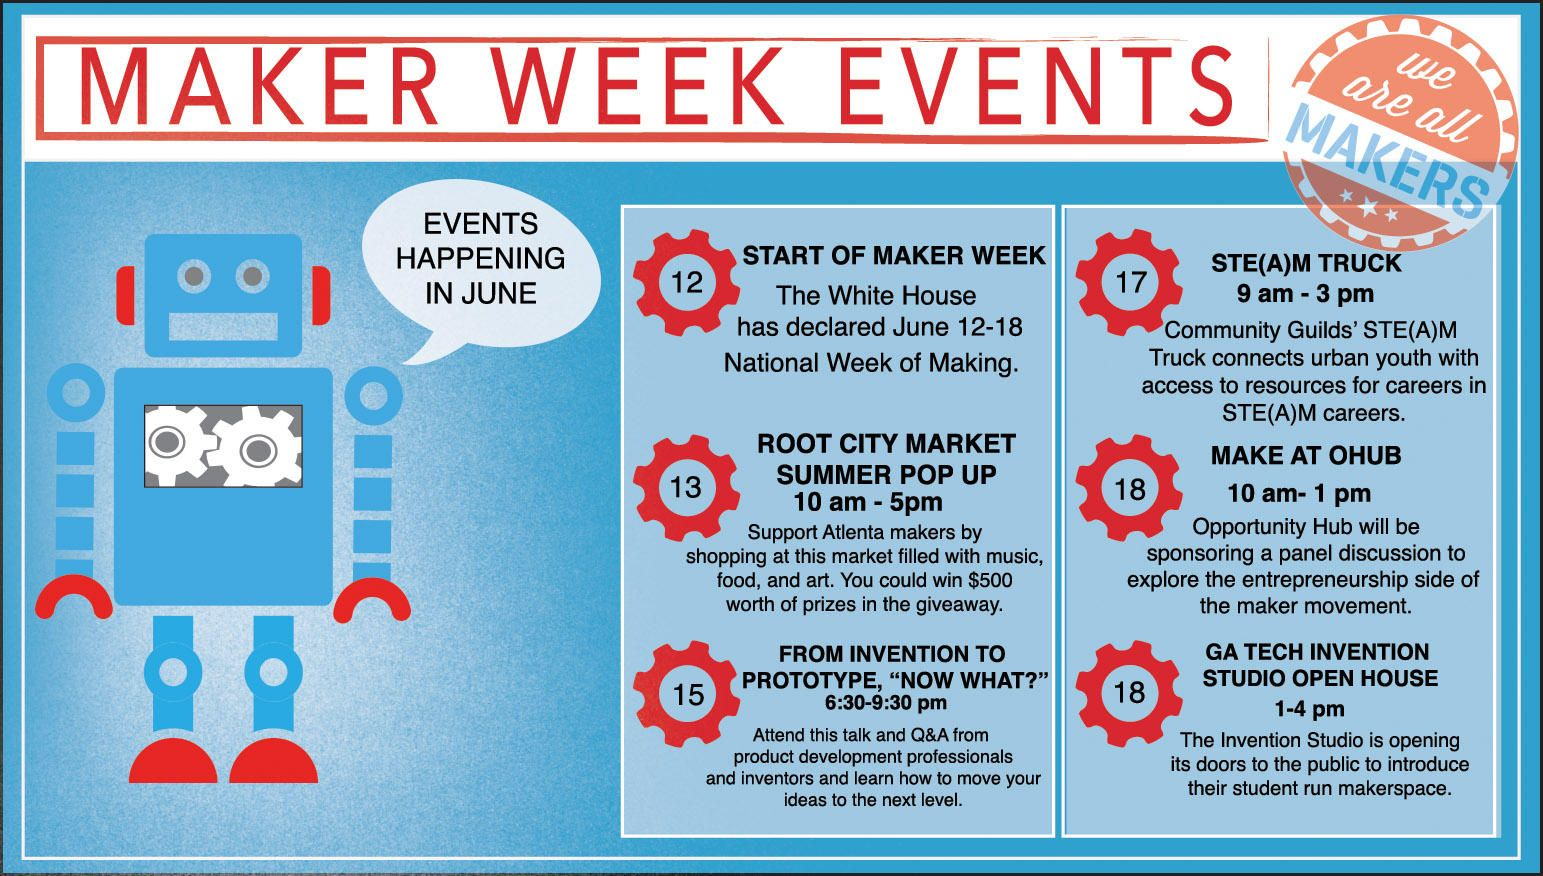 Maker Week events of June 12-18th 2015